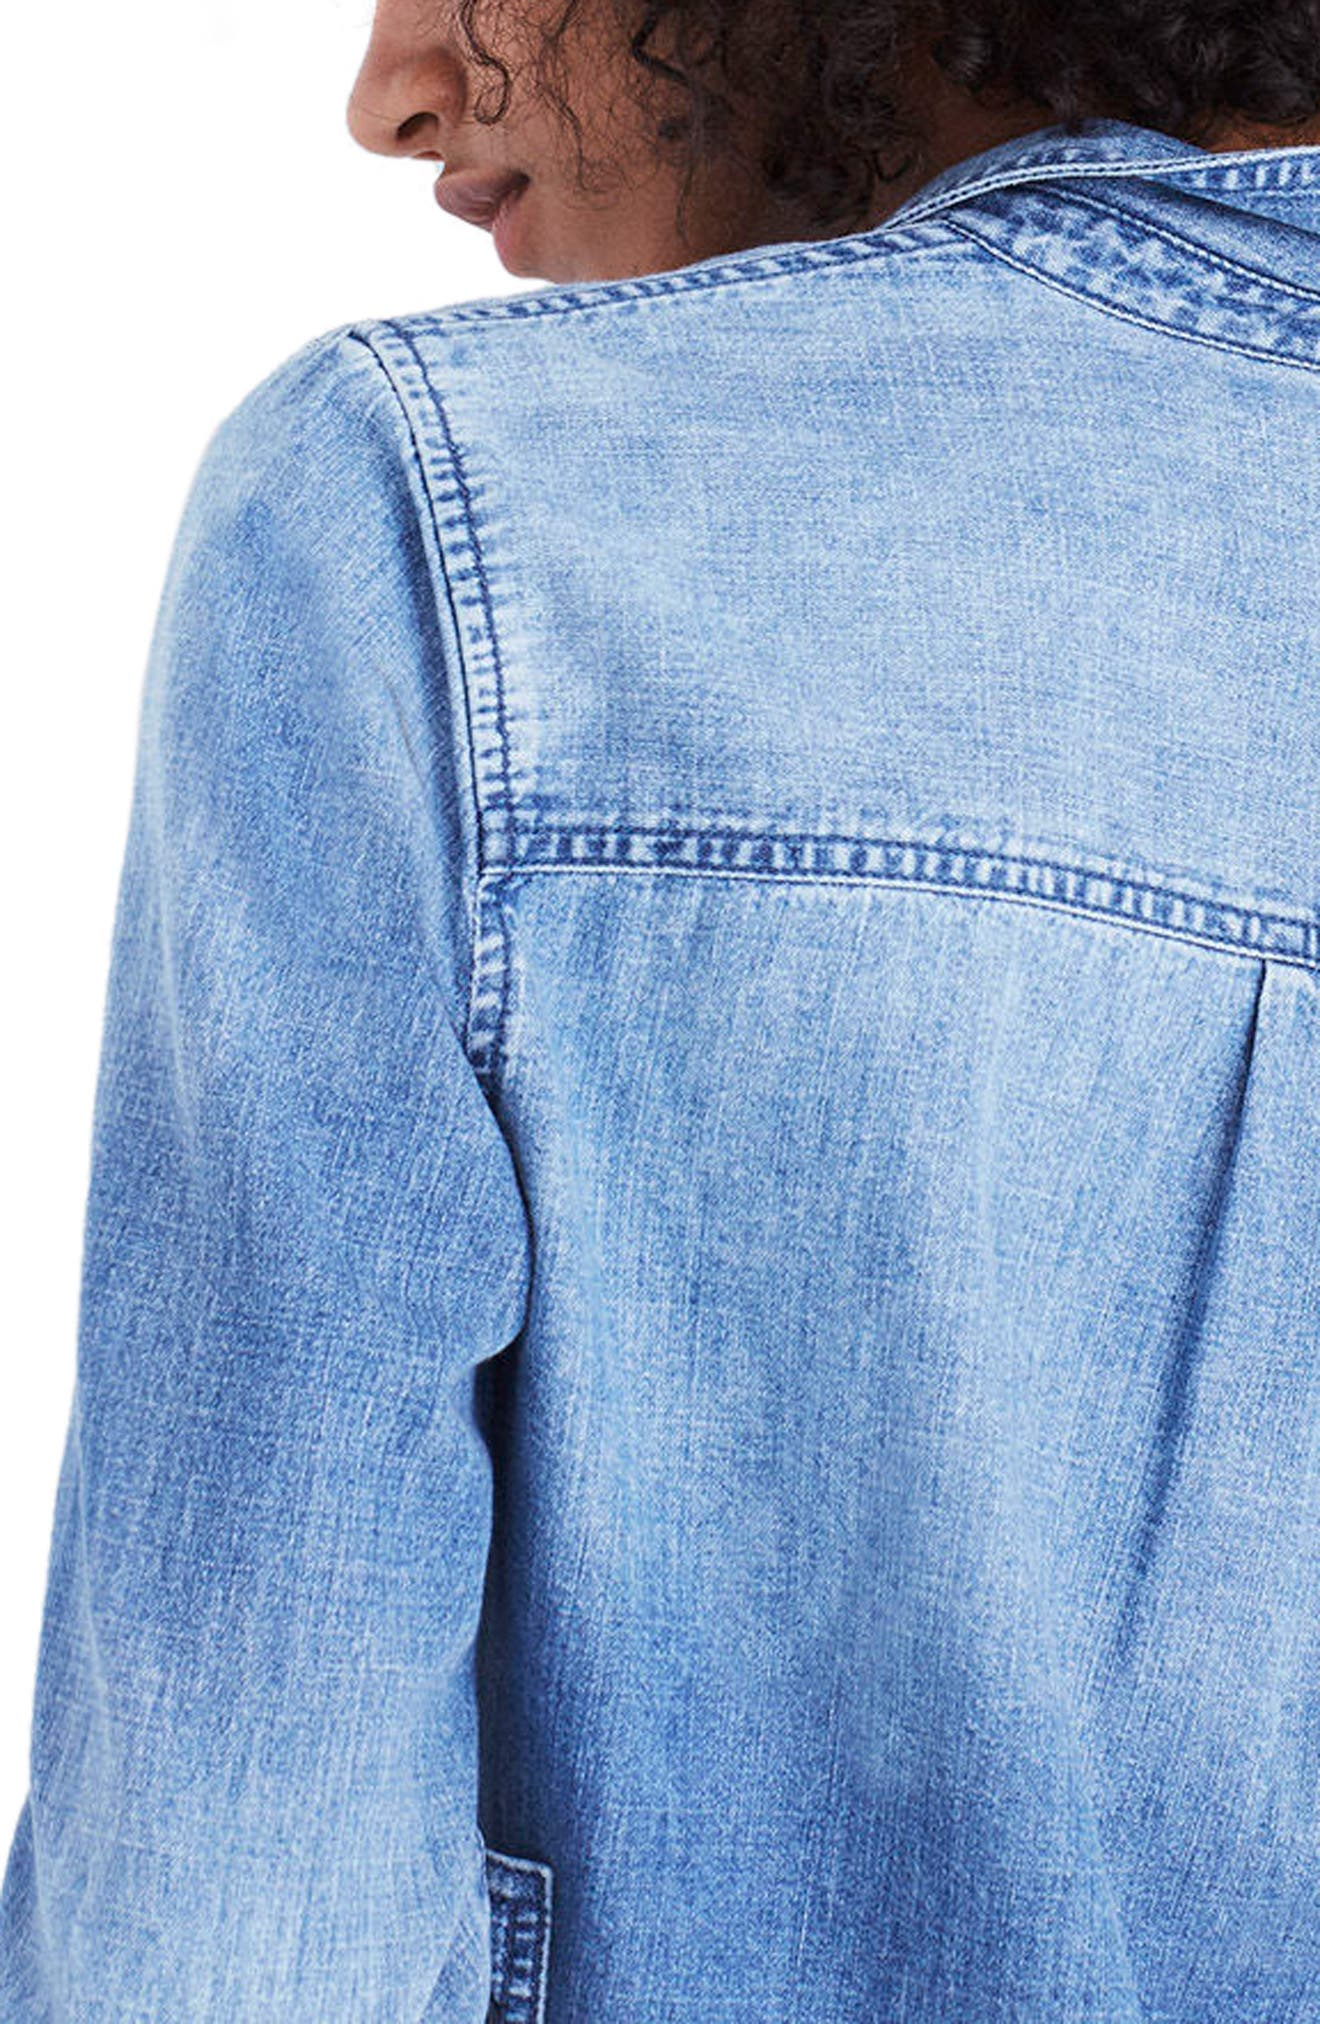 Cutoff Denim Shirt,                             Alternate thumbnail 2, color,                             Benwick Wash